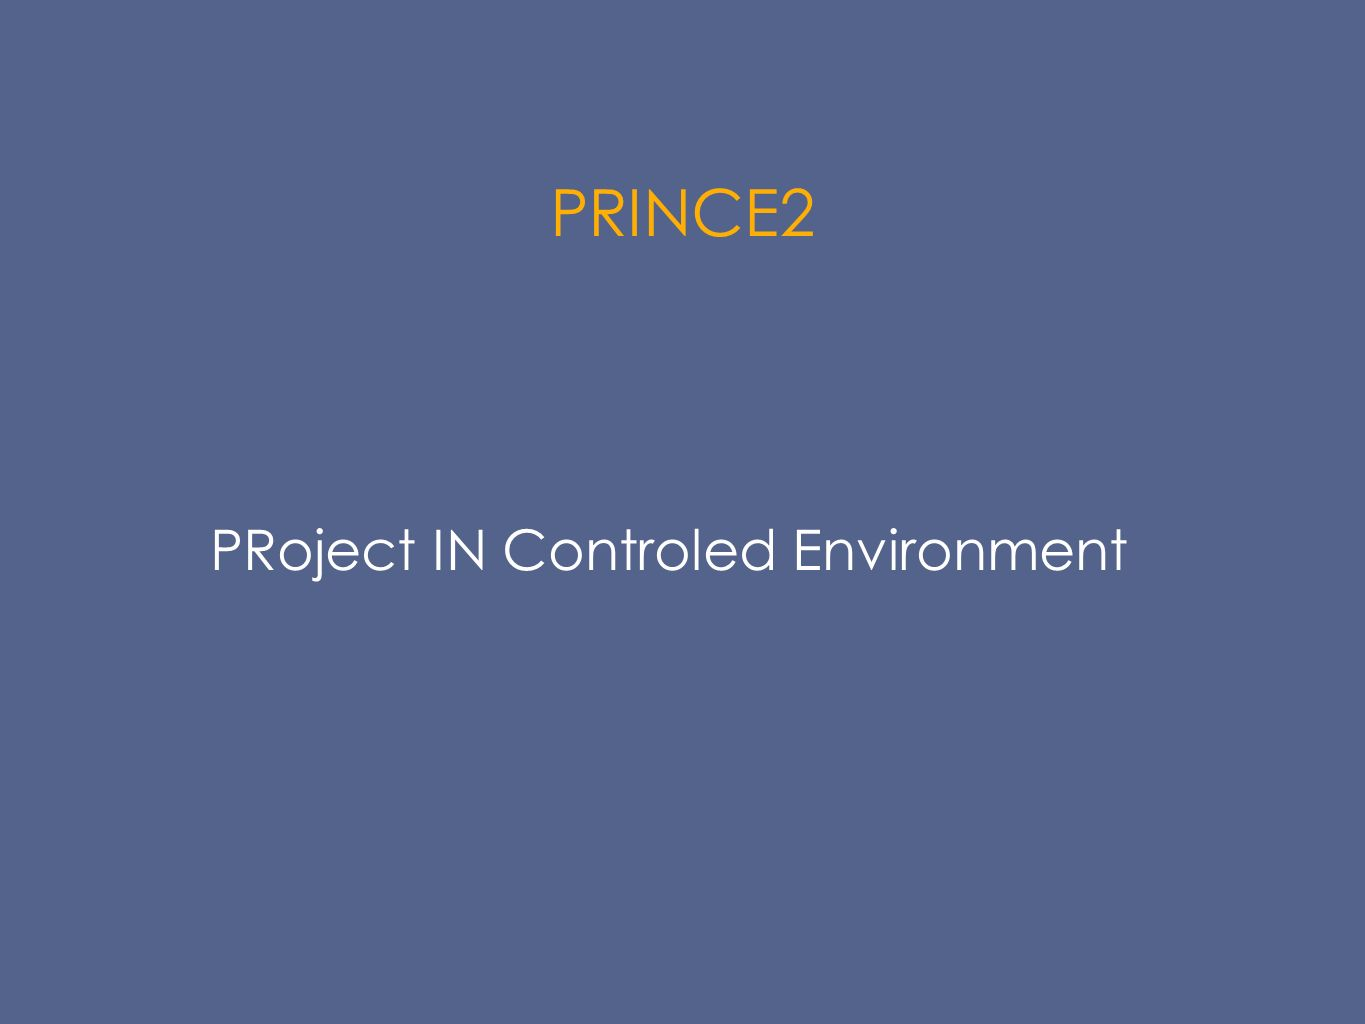 PRINCE2 PRoject IN Controled Environment